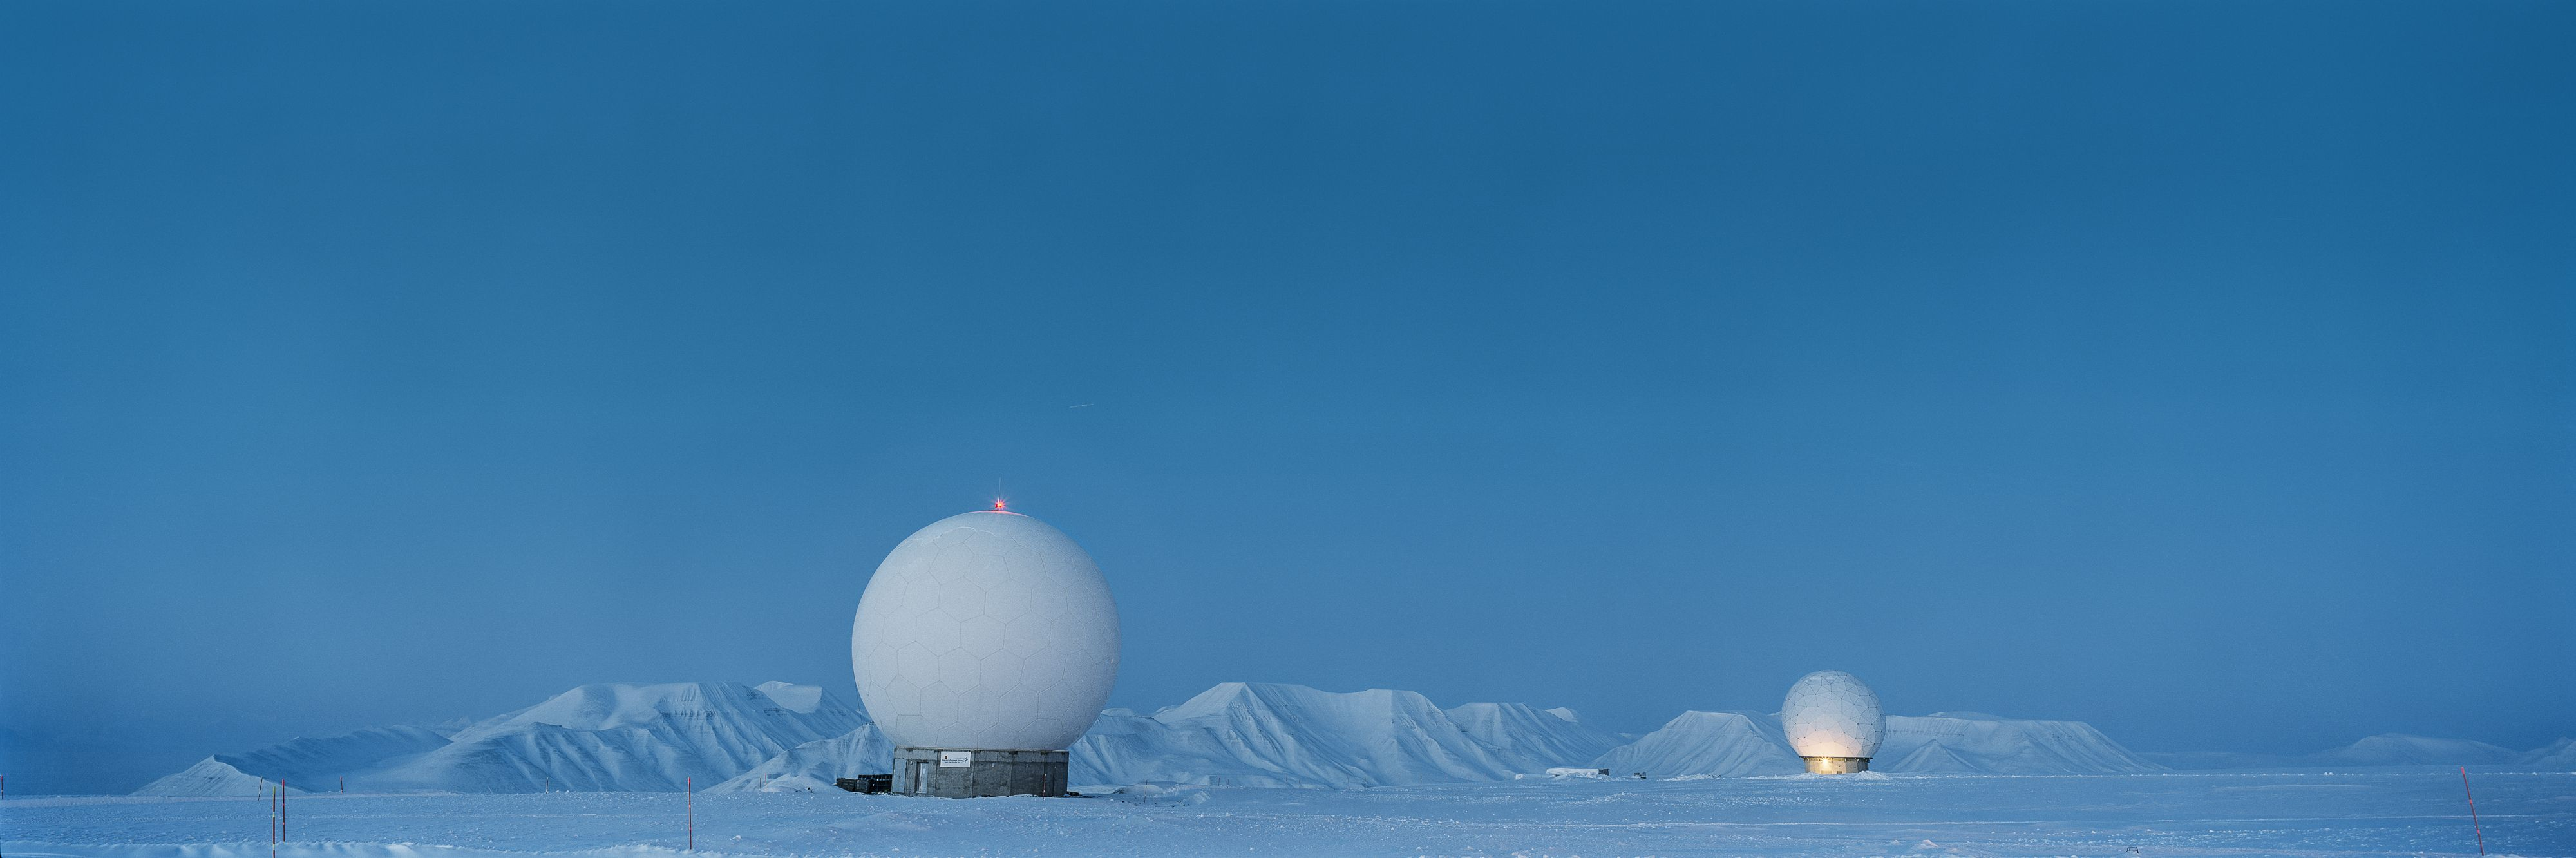 Spheres in moonlight, Arctic Technology, Spitsbergen